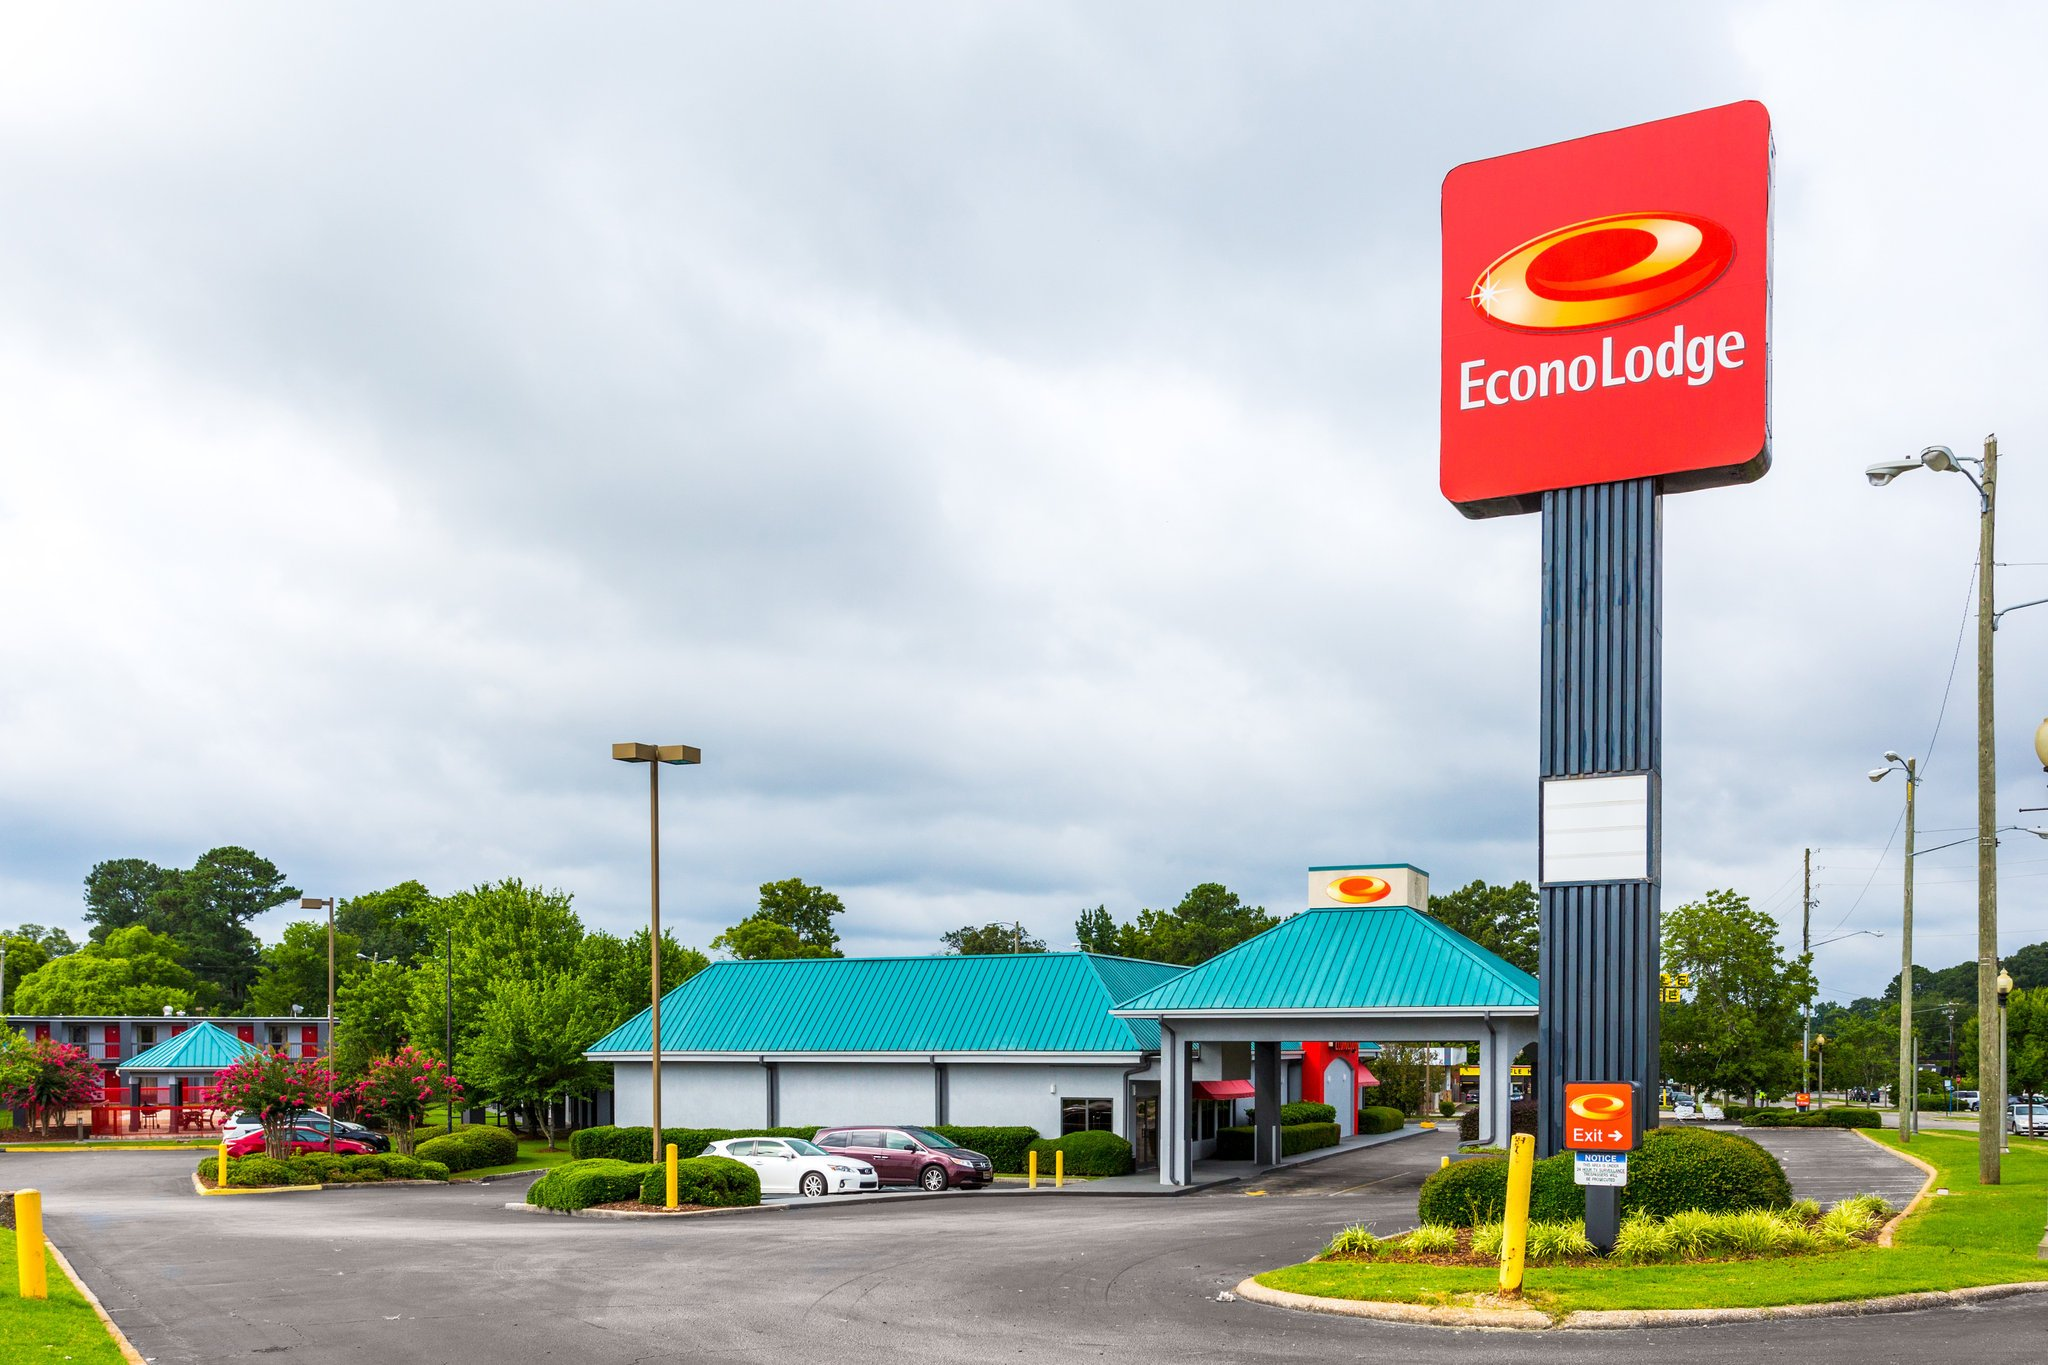 Econo Lodge Homewood - Birmingham